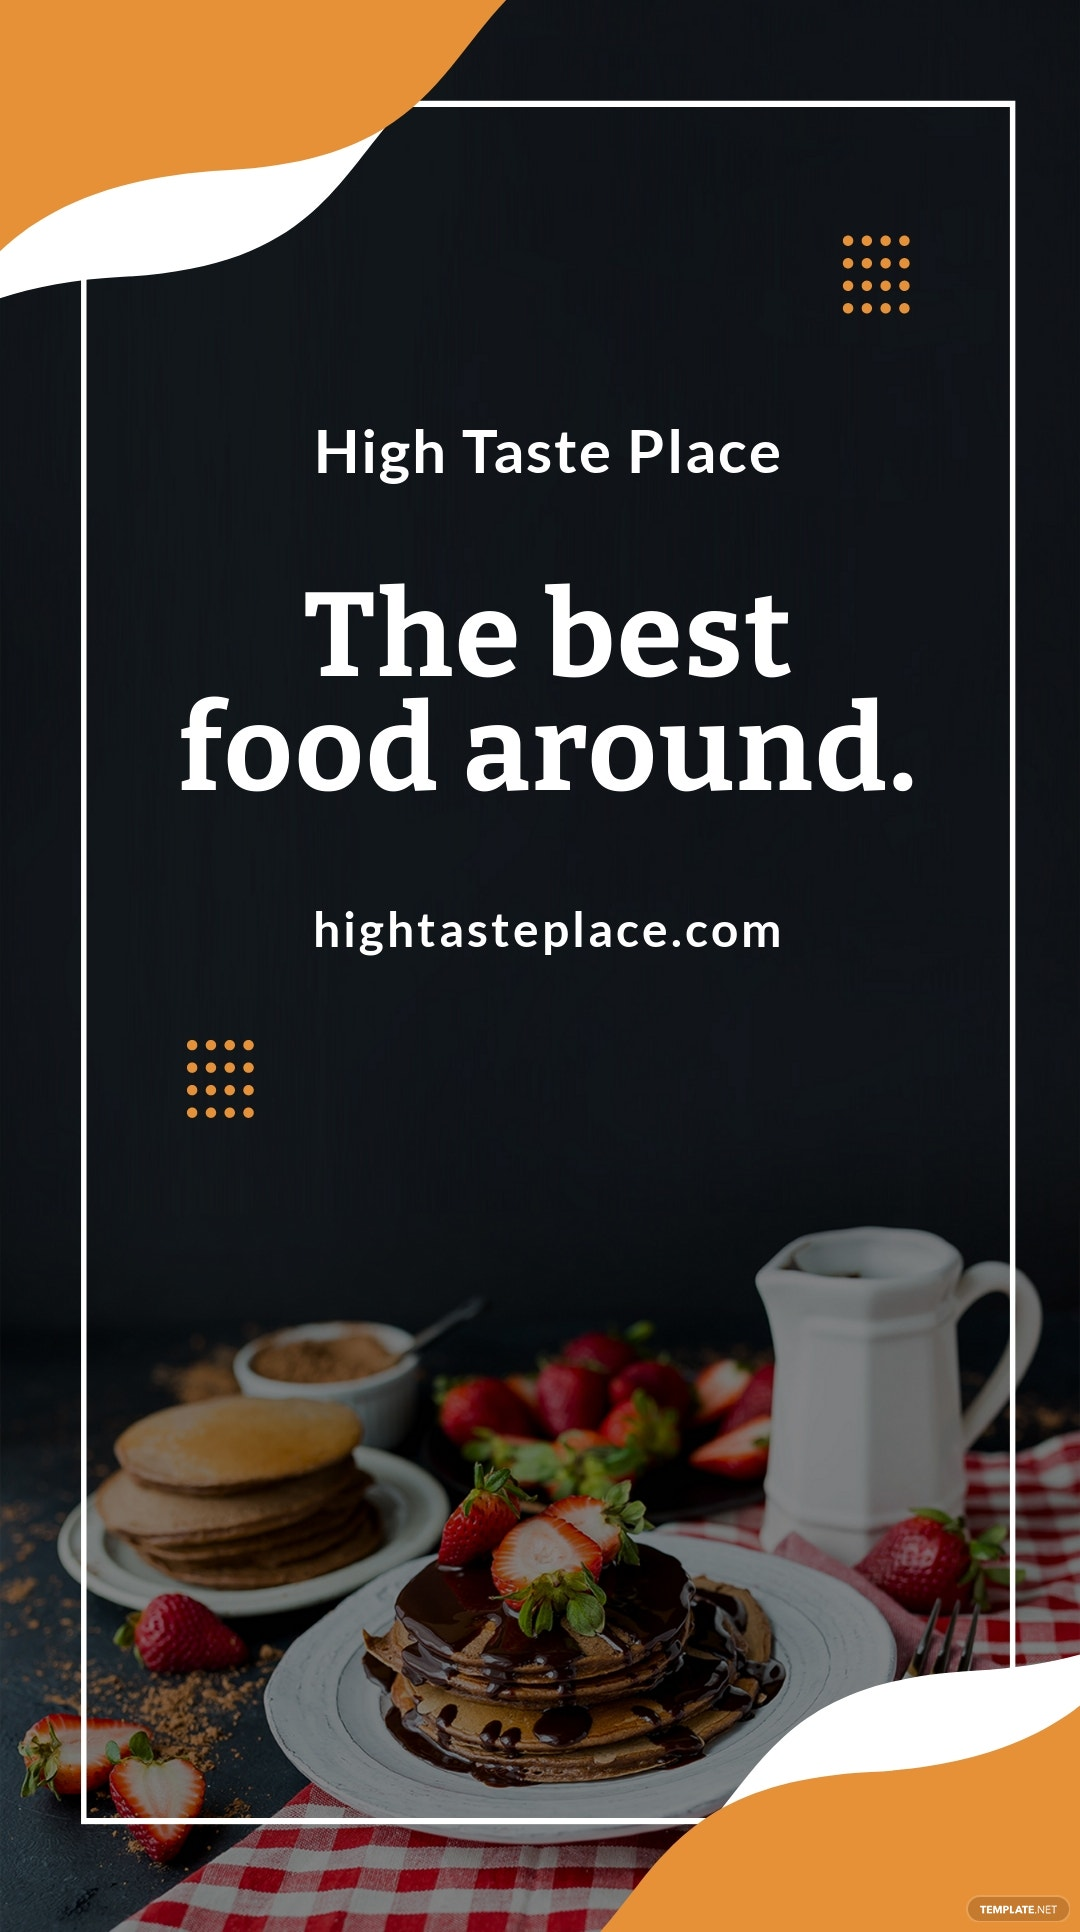 Free Food Mobile App Promotion Whatsapp Post Template